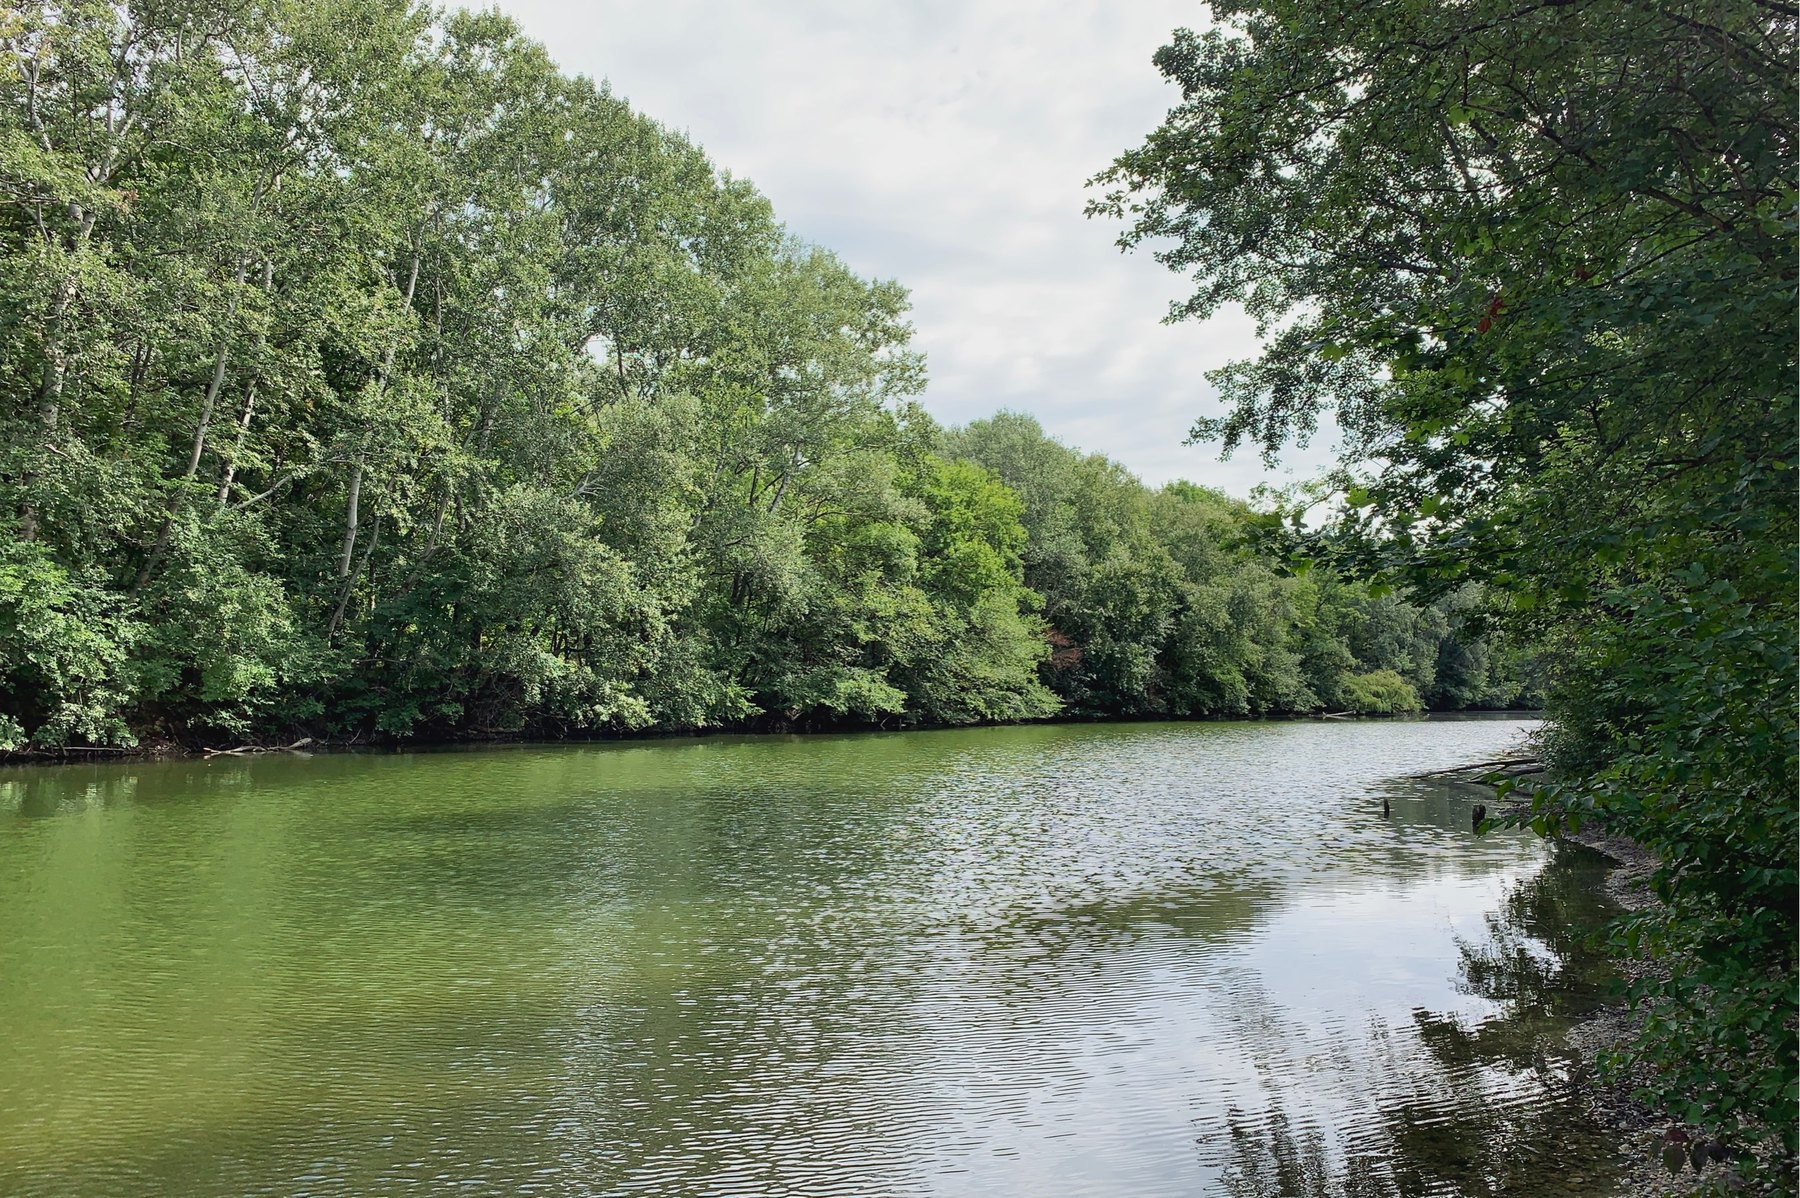 Small lake with trees at the edge of the water